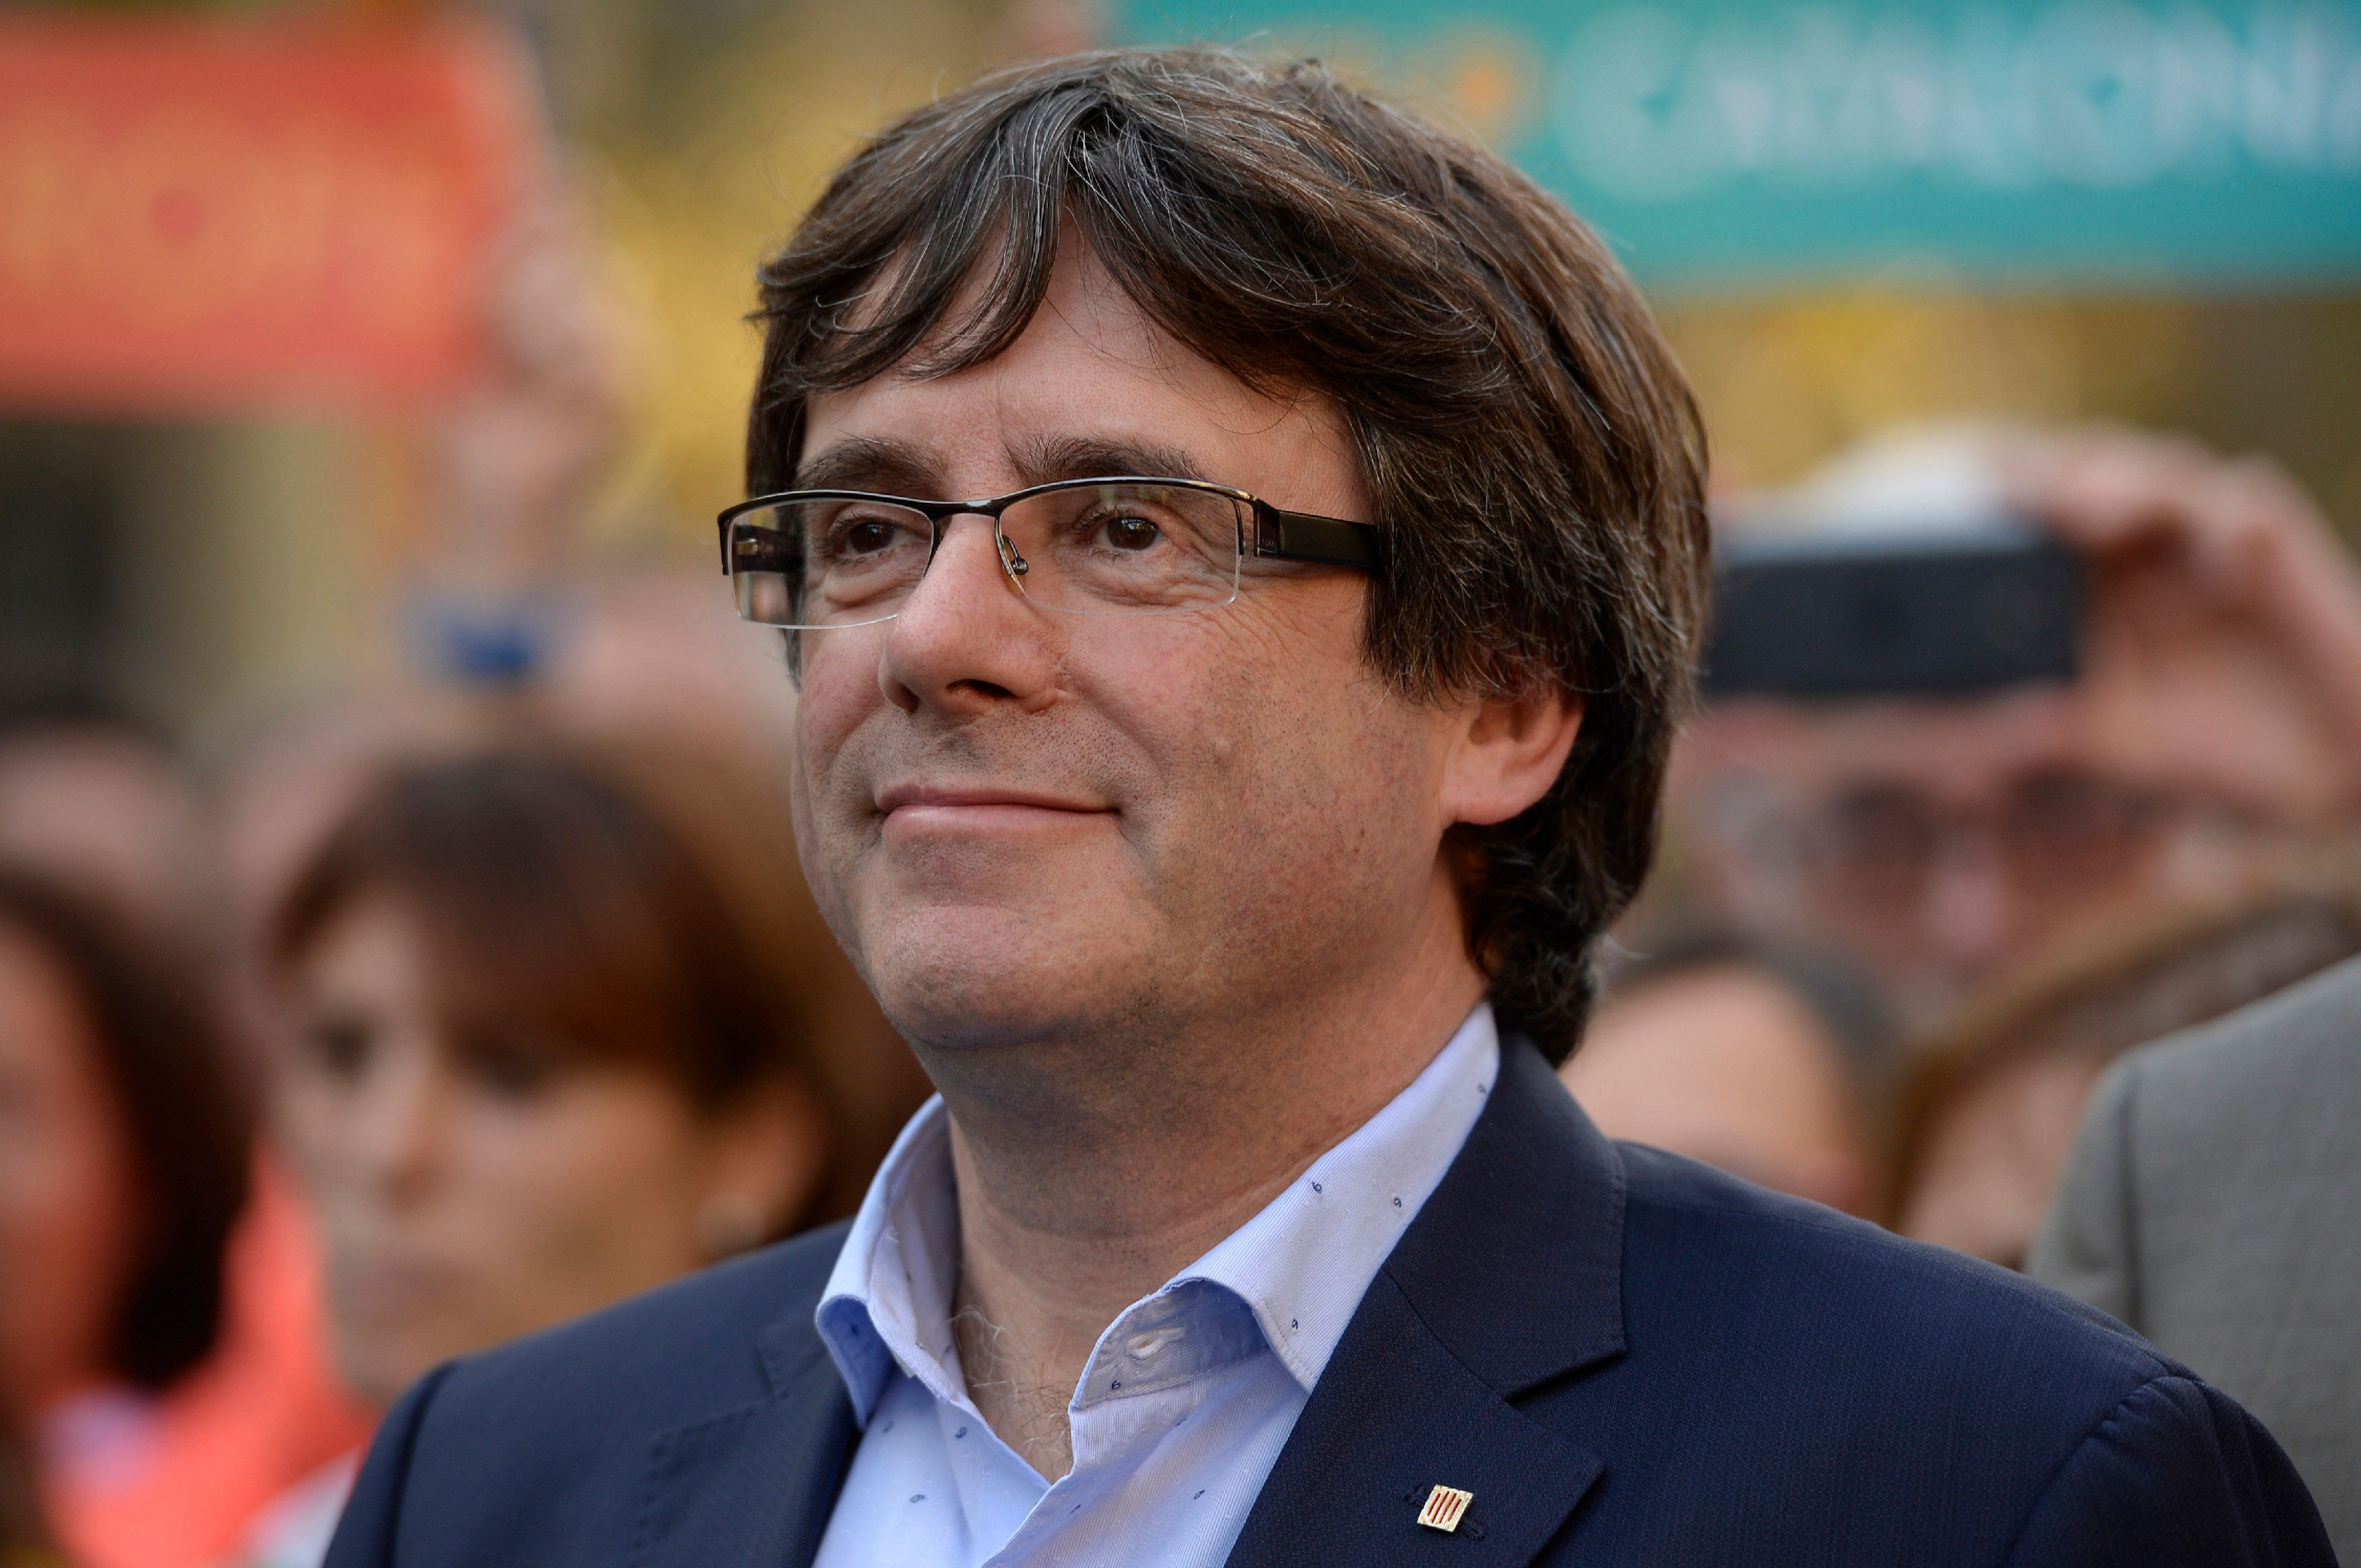 Who Is Carles Puigdemont, Leader Of Catalonia's Controversial Independence